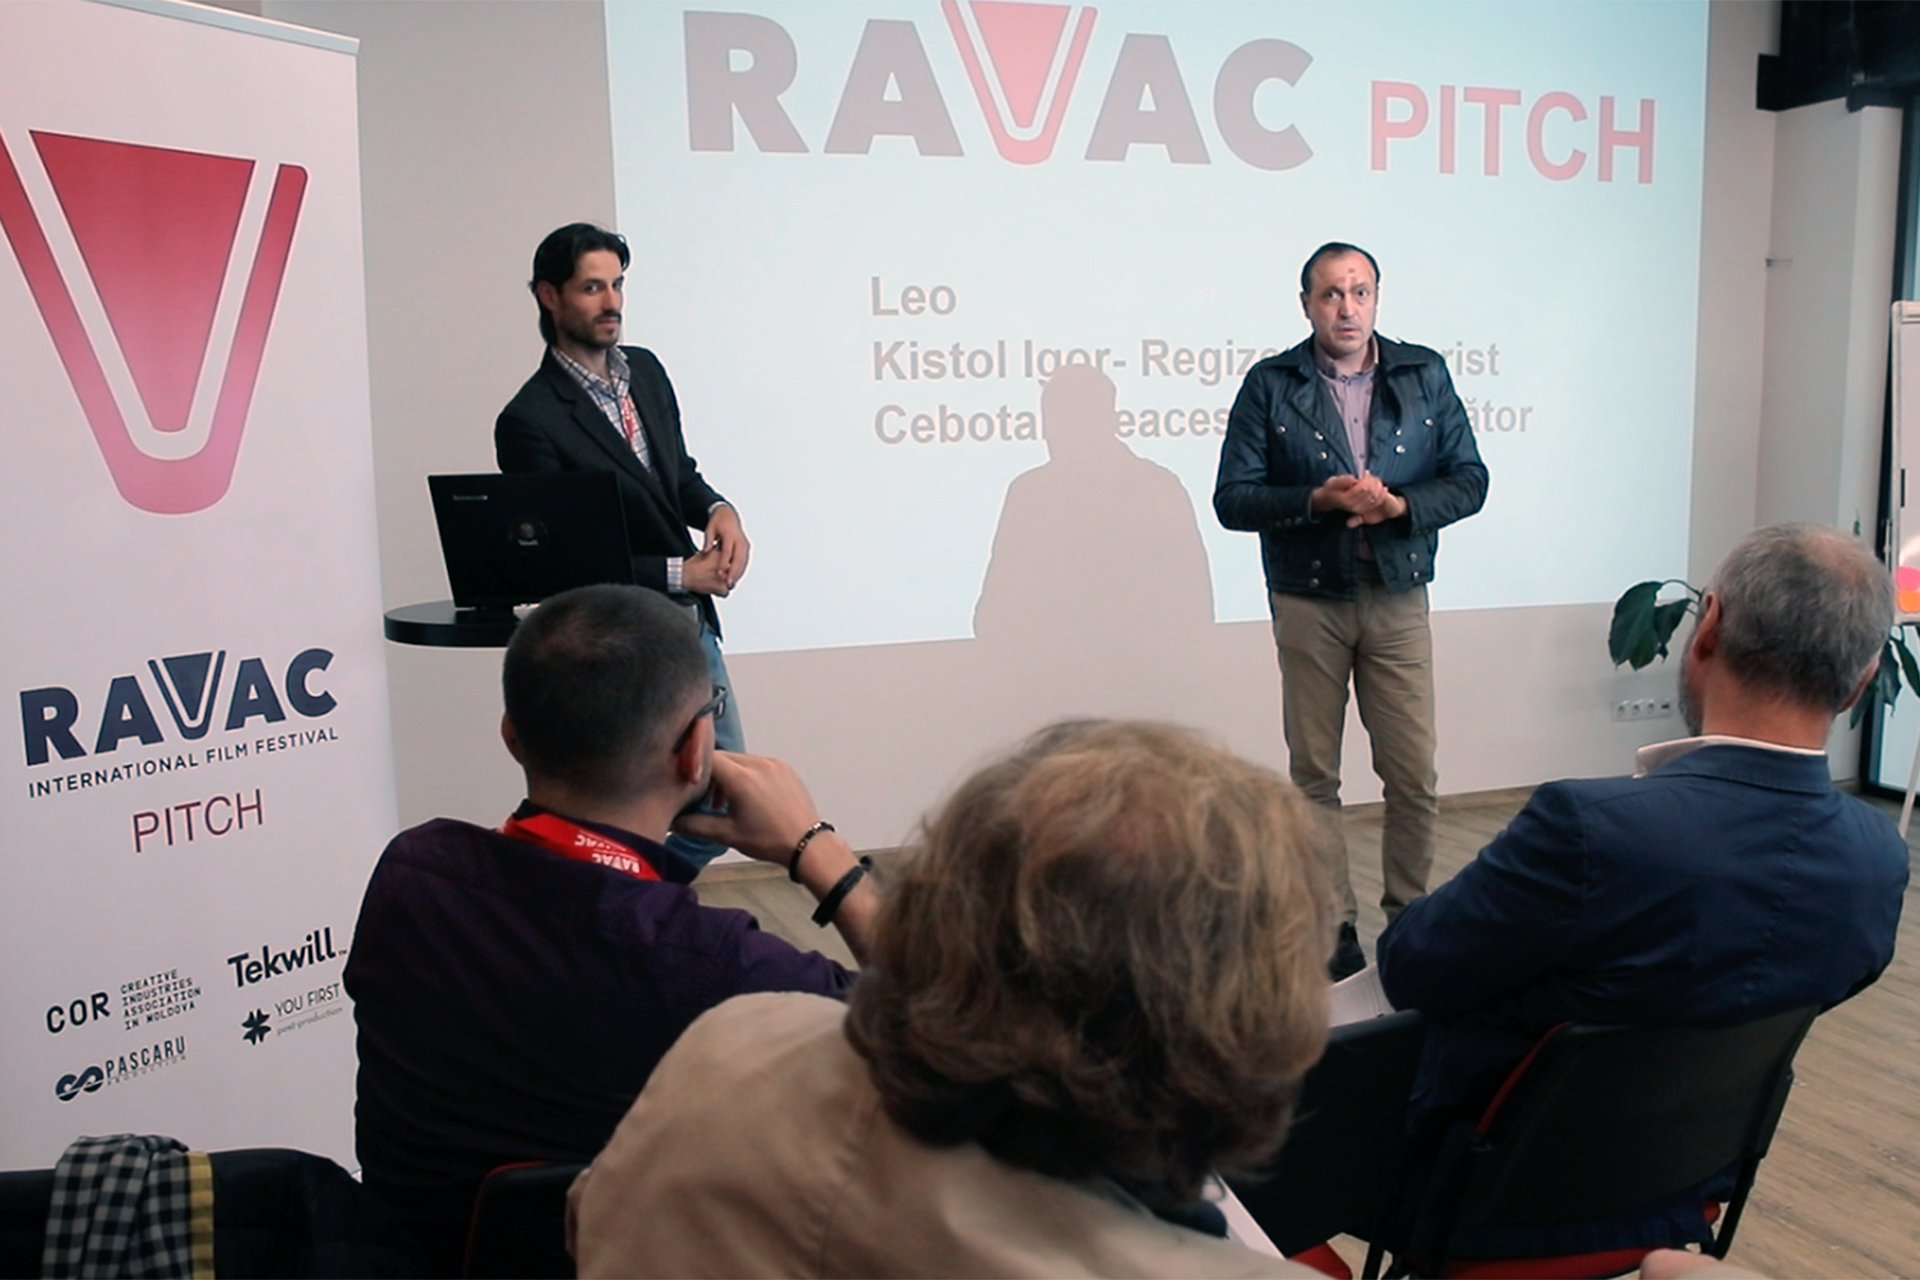 RAVAC Pitch